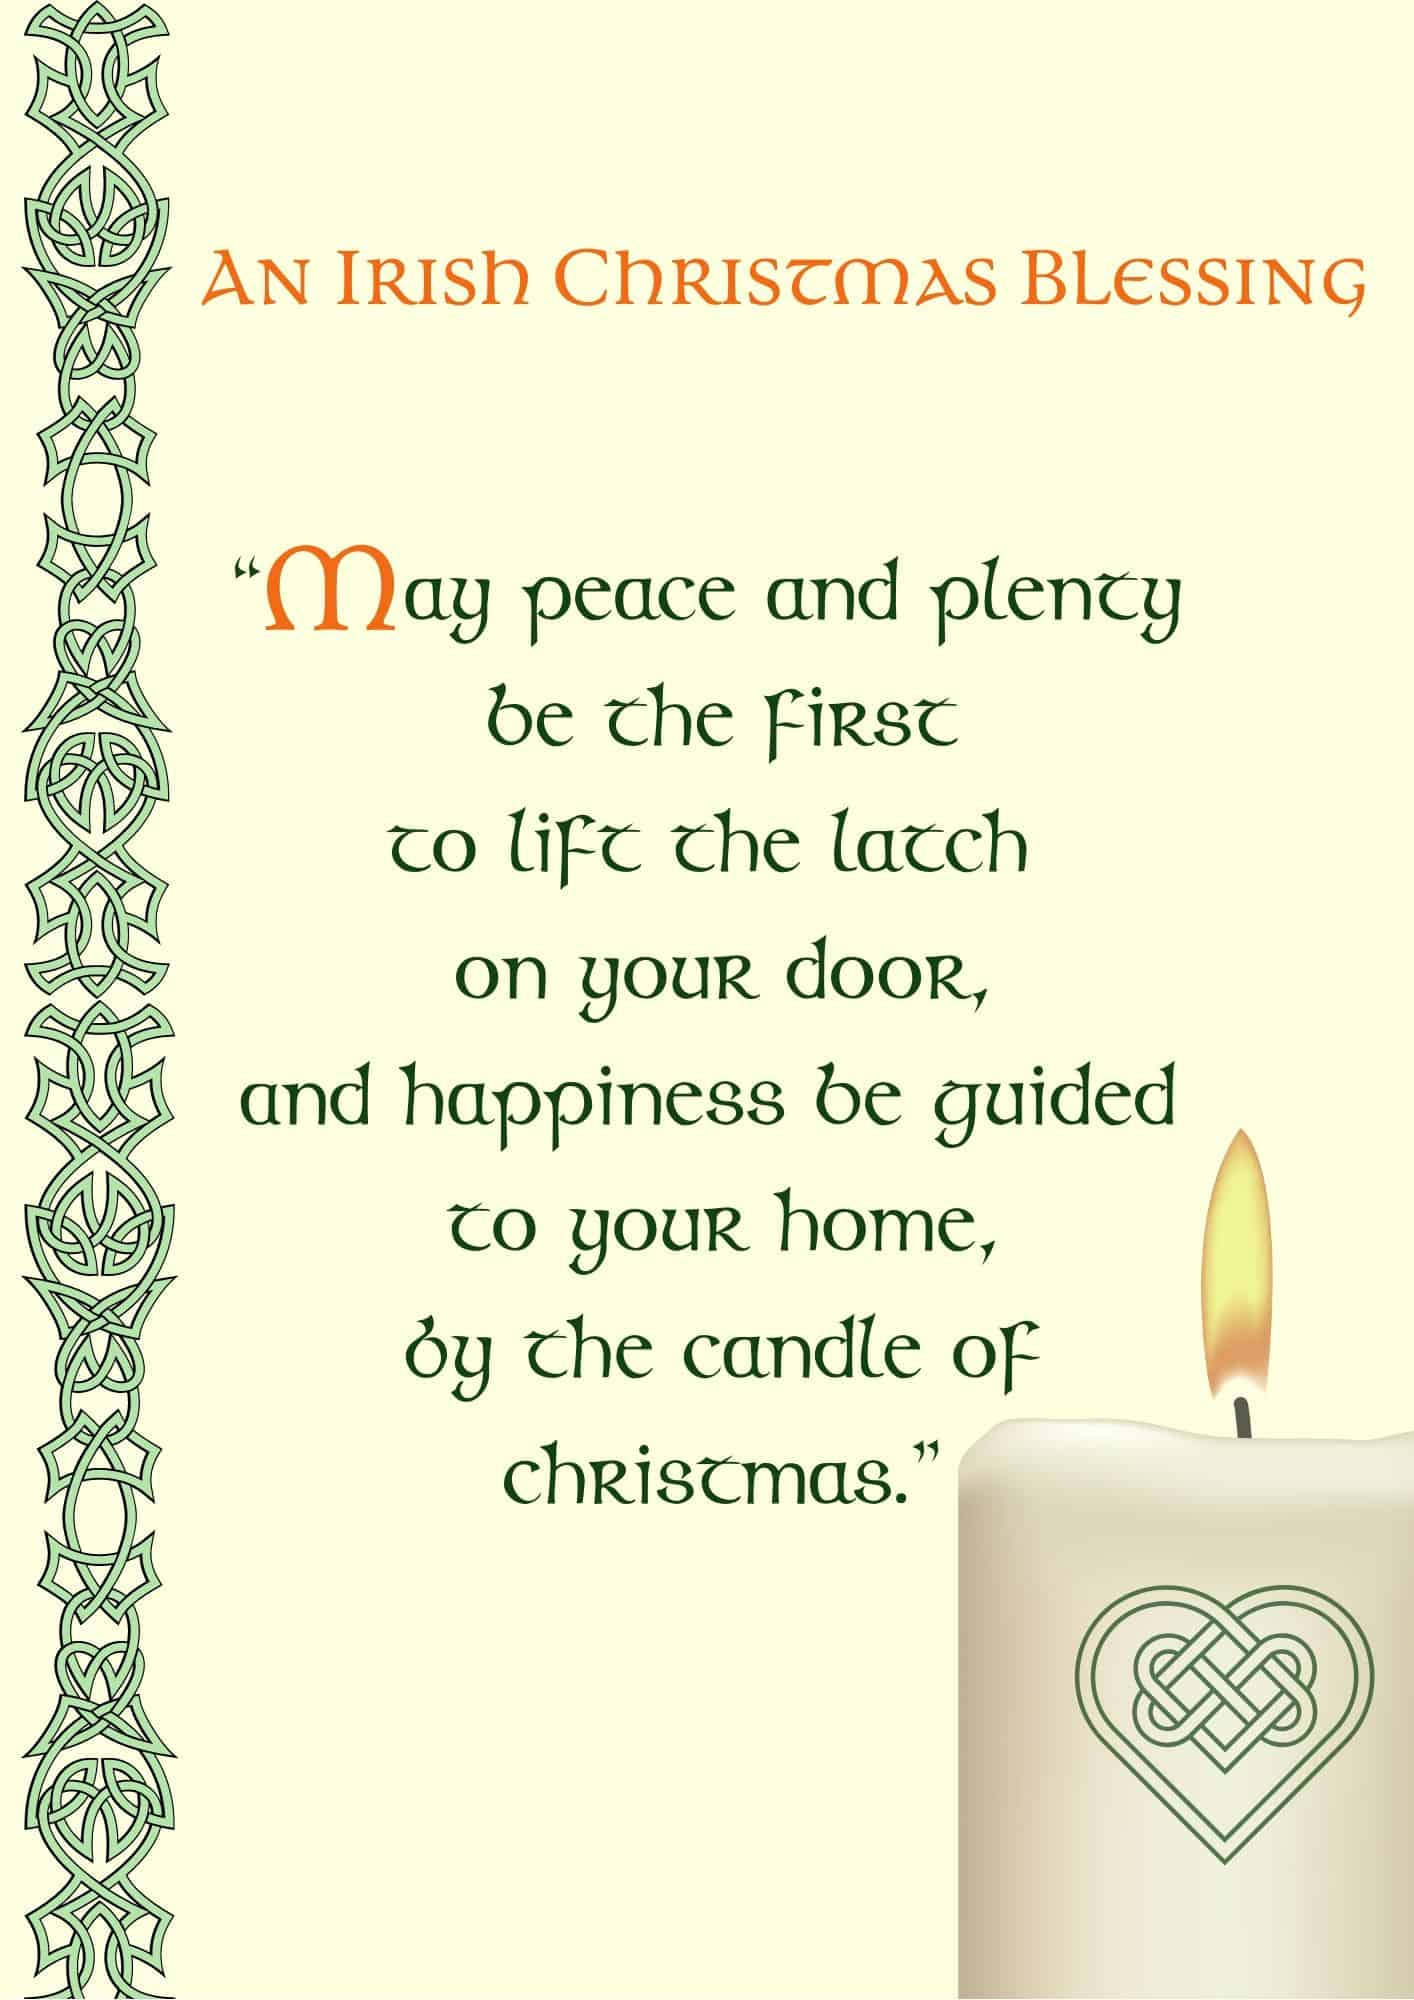 A Celtic Candle adorns an Irish Christmas Blessing Printable